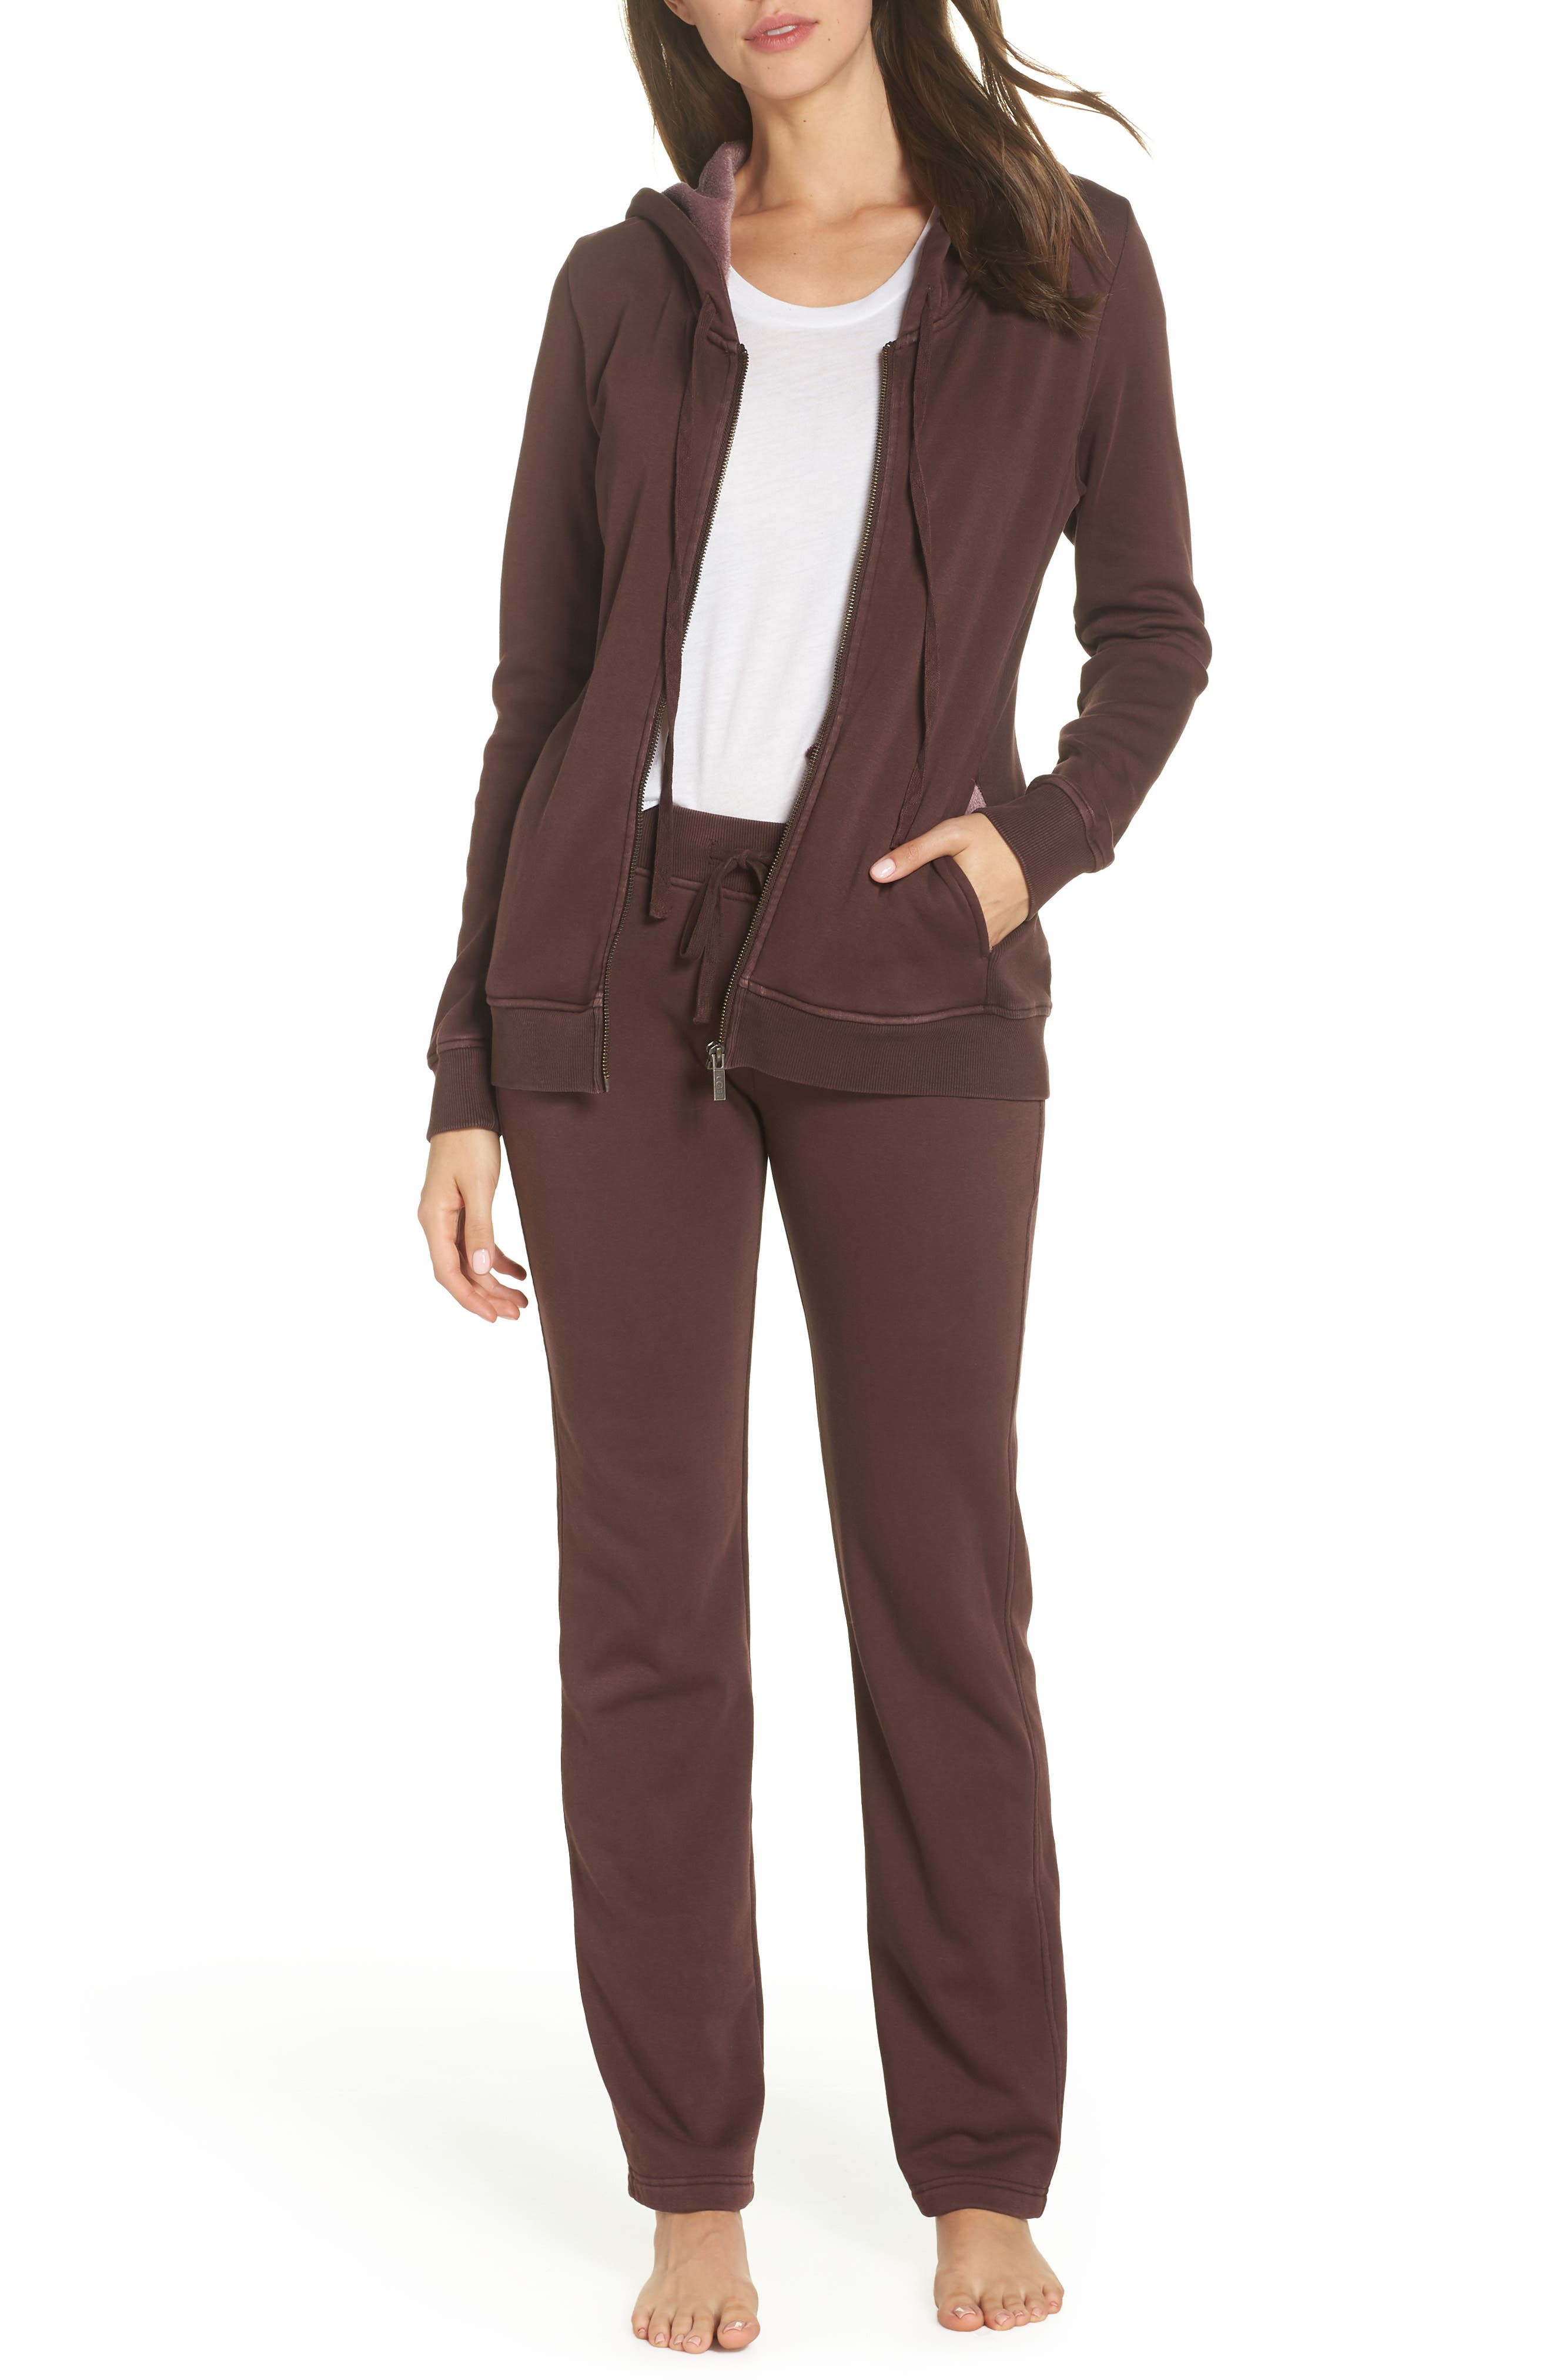 Penny Washed Lounge Pants,                             Alternate thumbnail 7, color,                             PORT